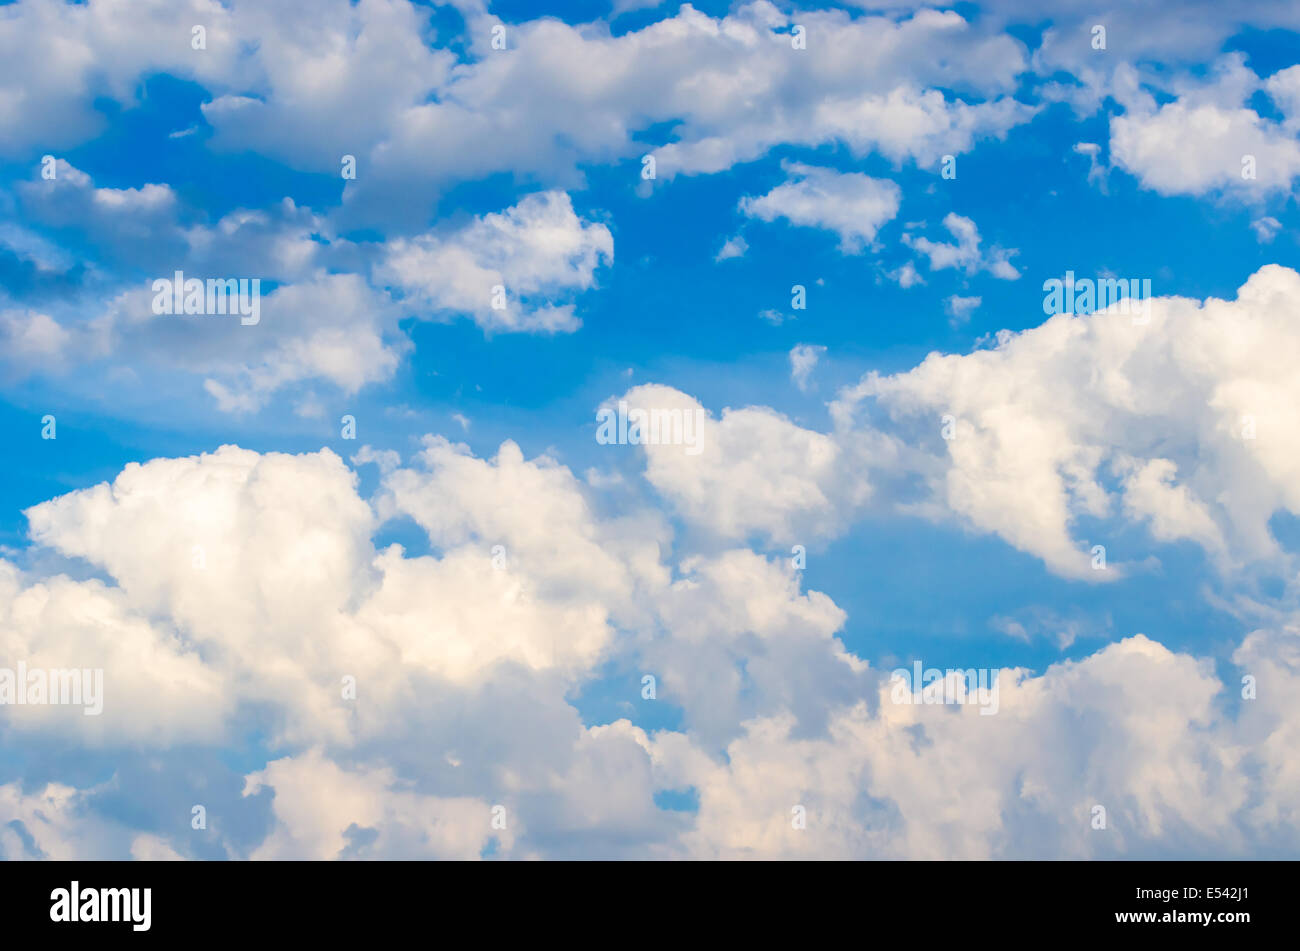 Blue sky background with white clouds, photo taken on July 11th, 2014 in Dalian of China. - Stock Image